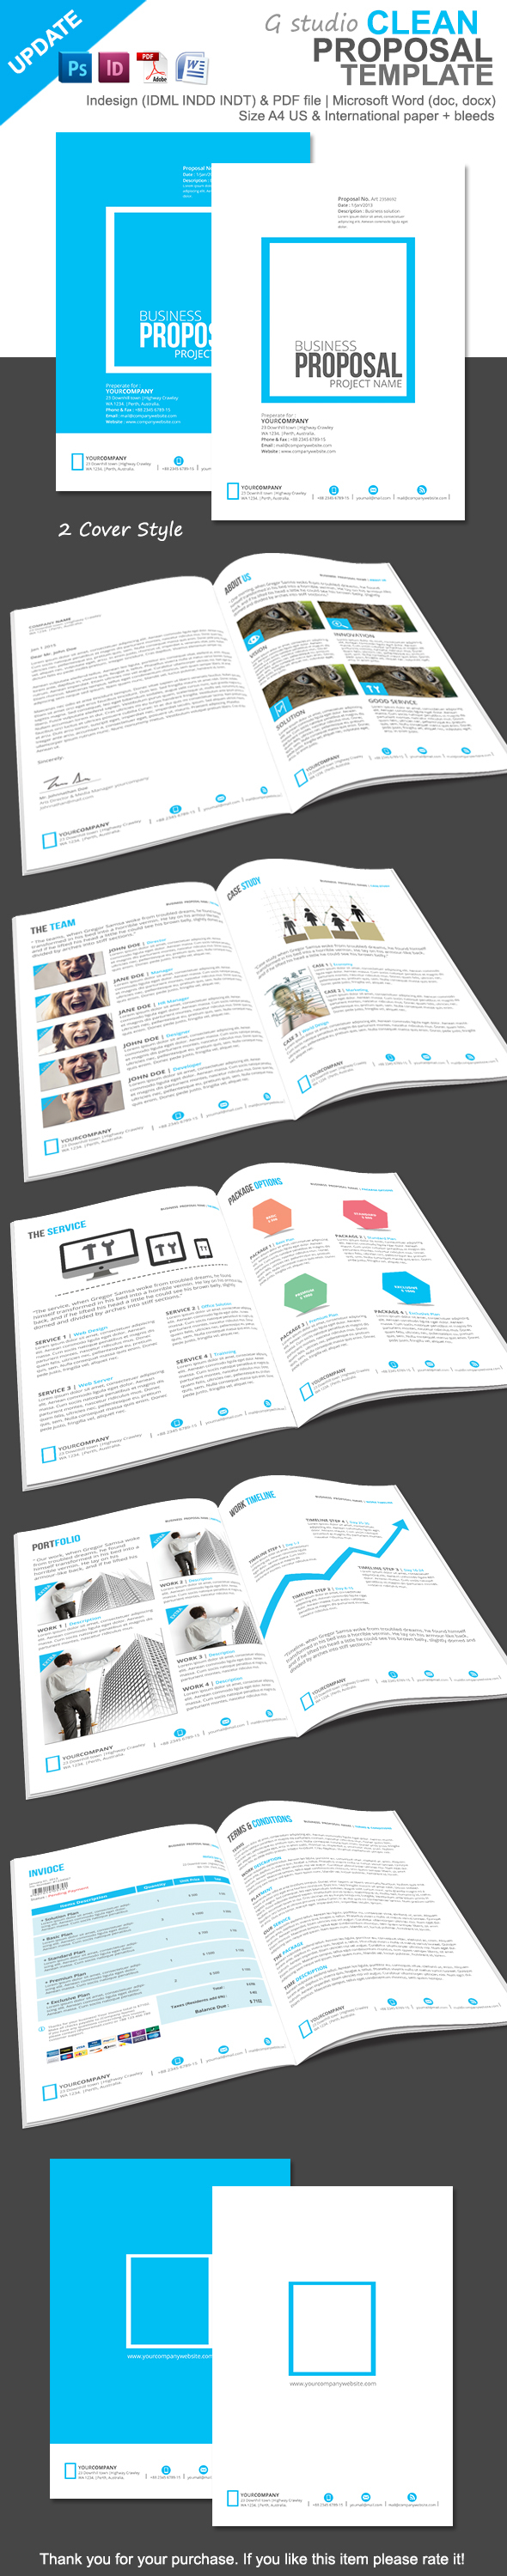 Product Sales Proposal Template Gstudio Clean Proposal Templateterusawa G Studio Via Behance .